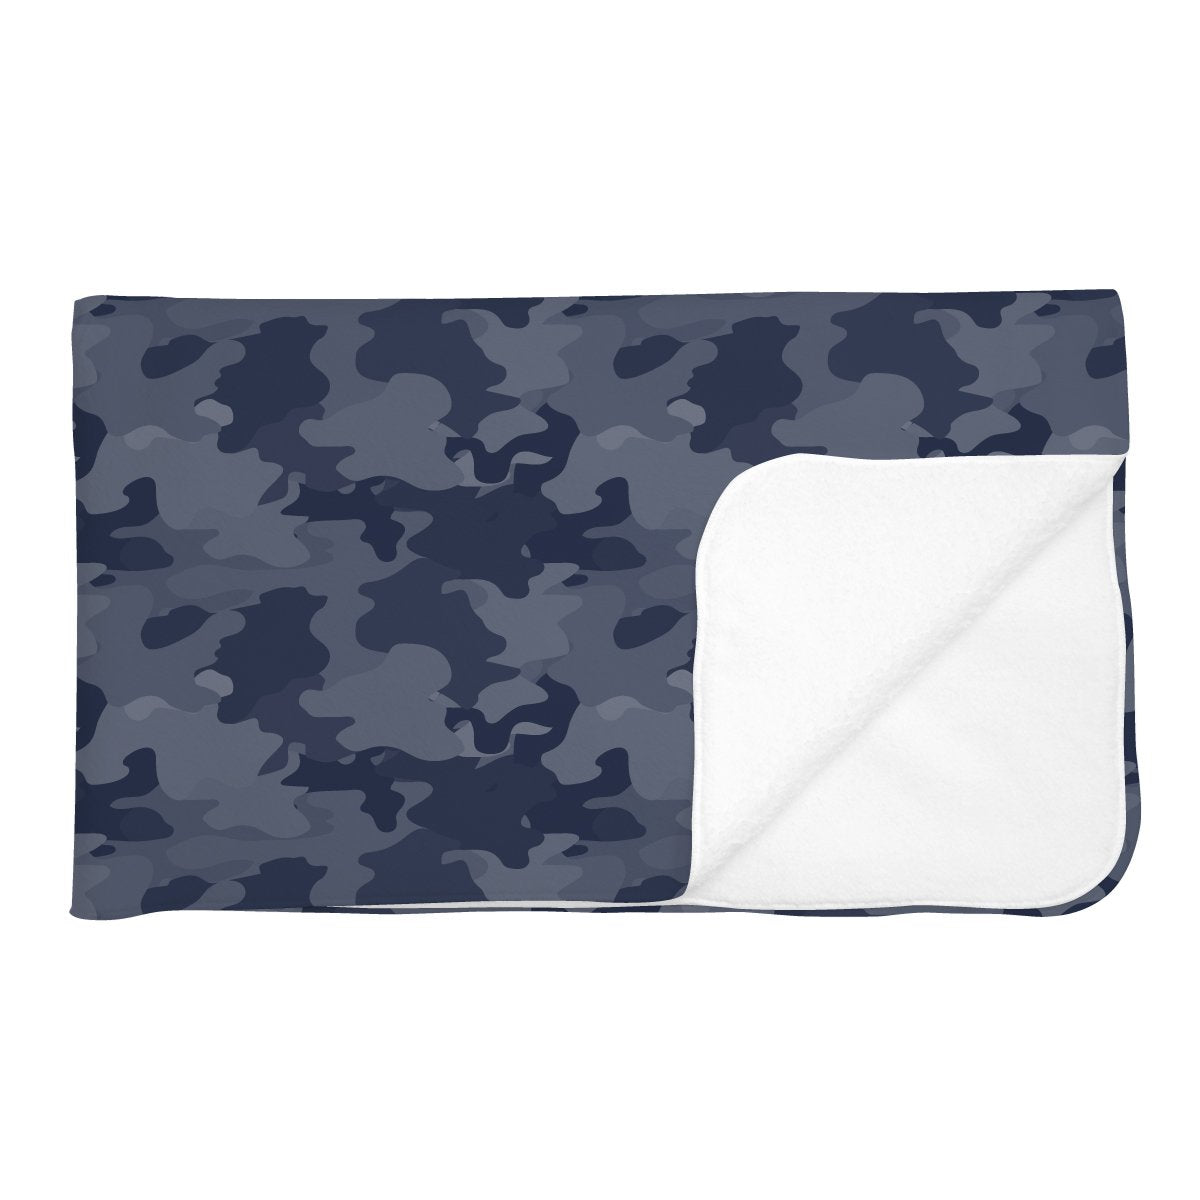 Maverick's High Sea Camo | Adult Size Blanket